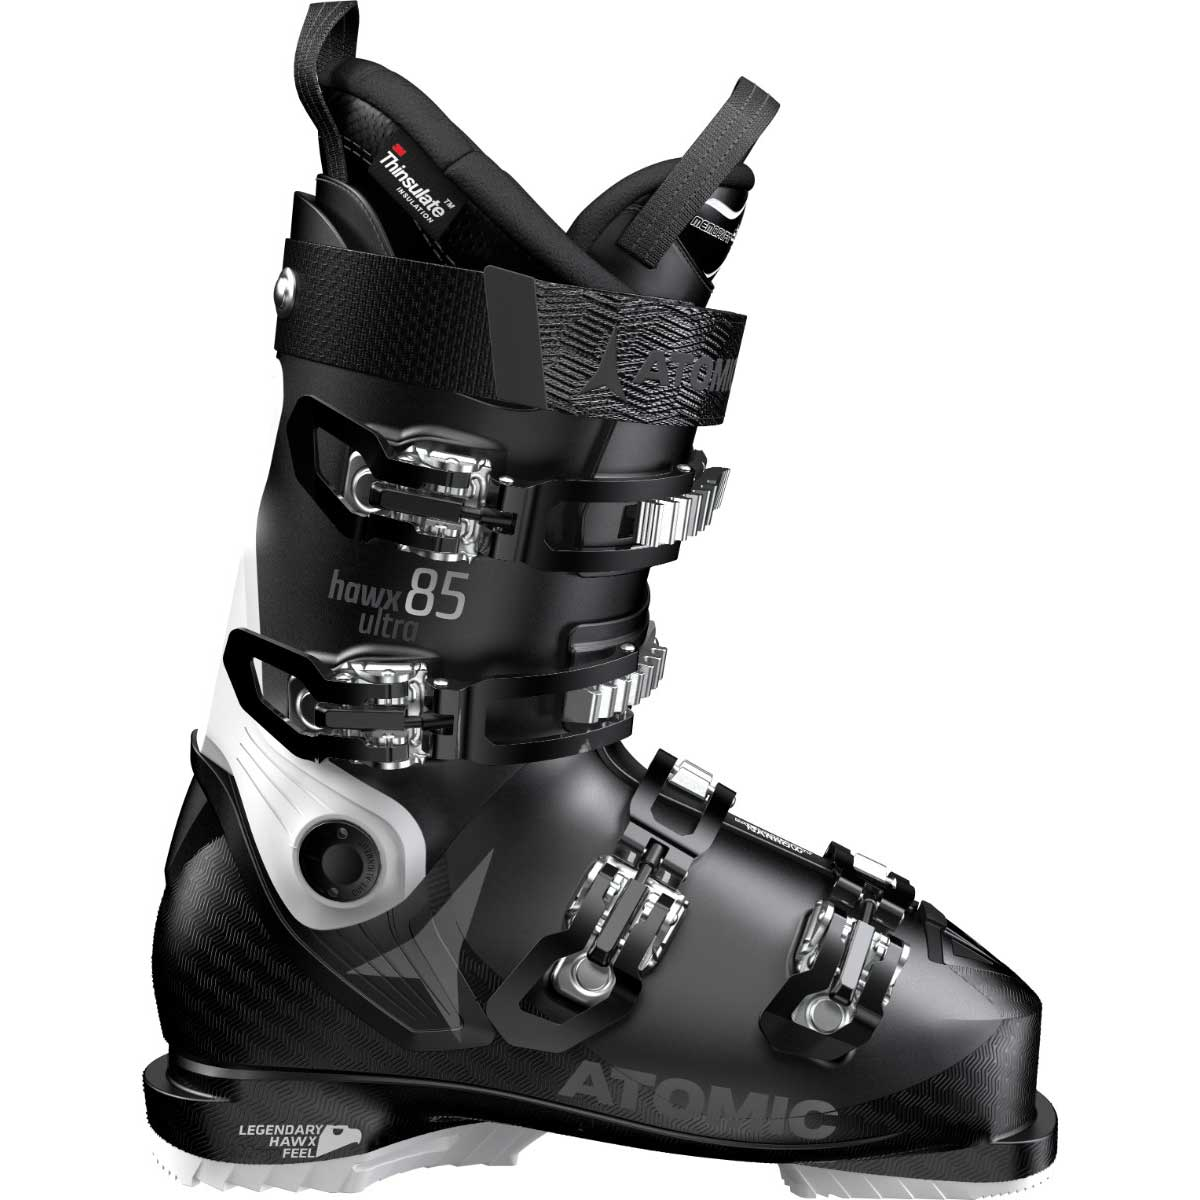 Atomic women's HAWX Ultra 85 ski boot in black and white